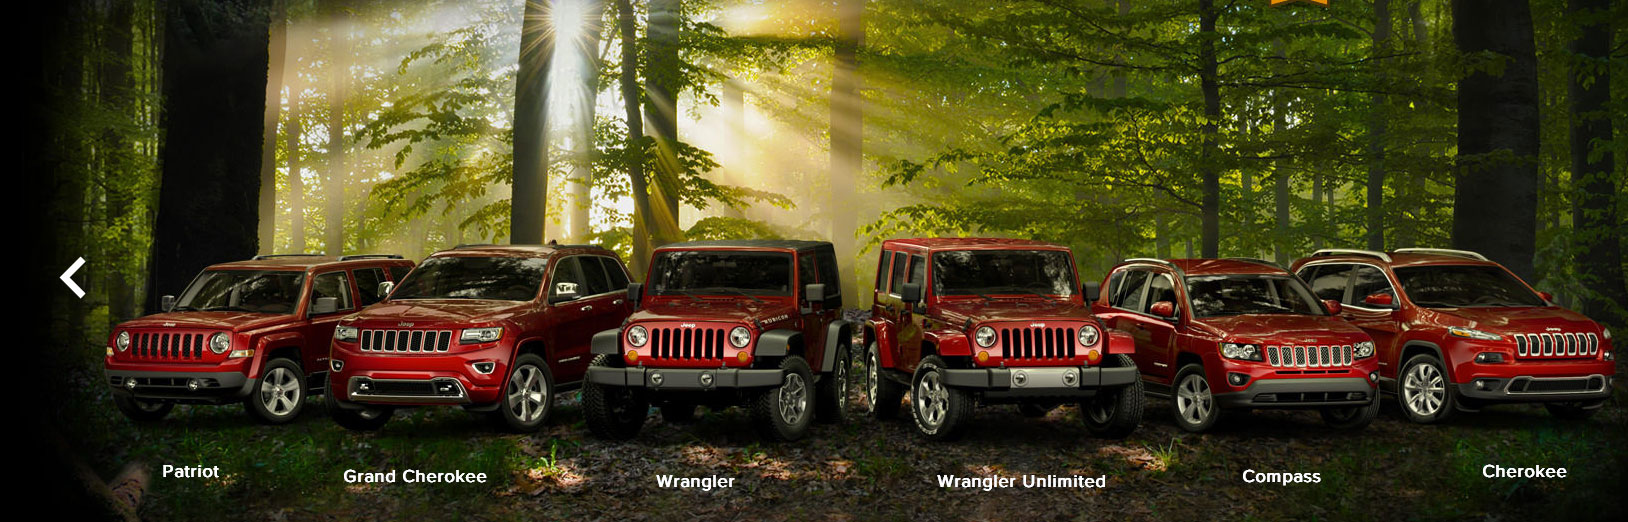 Types Of Jeeps >> What Are The Different Types Of Jeeps Jeep Enthusiasts